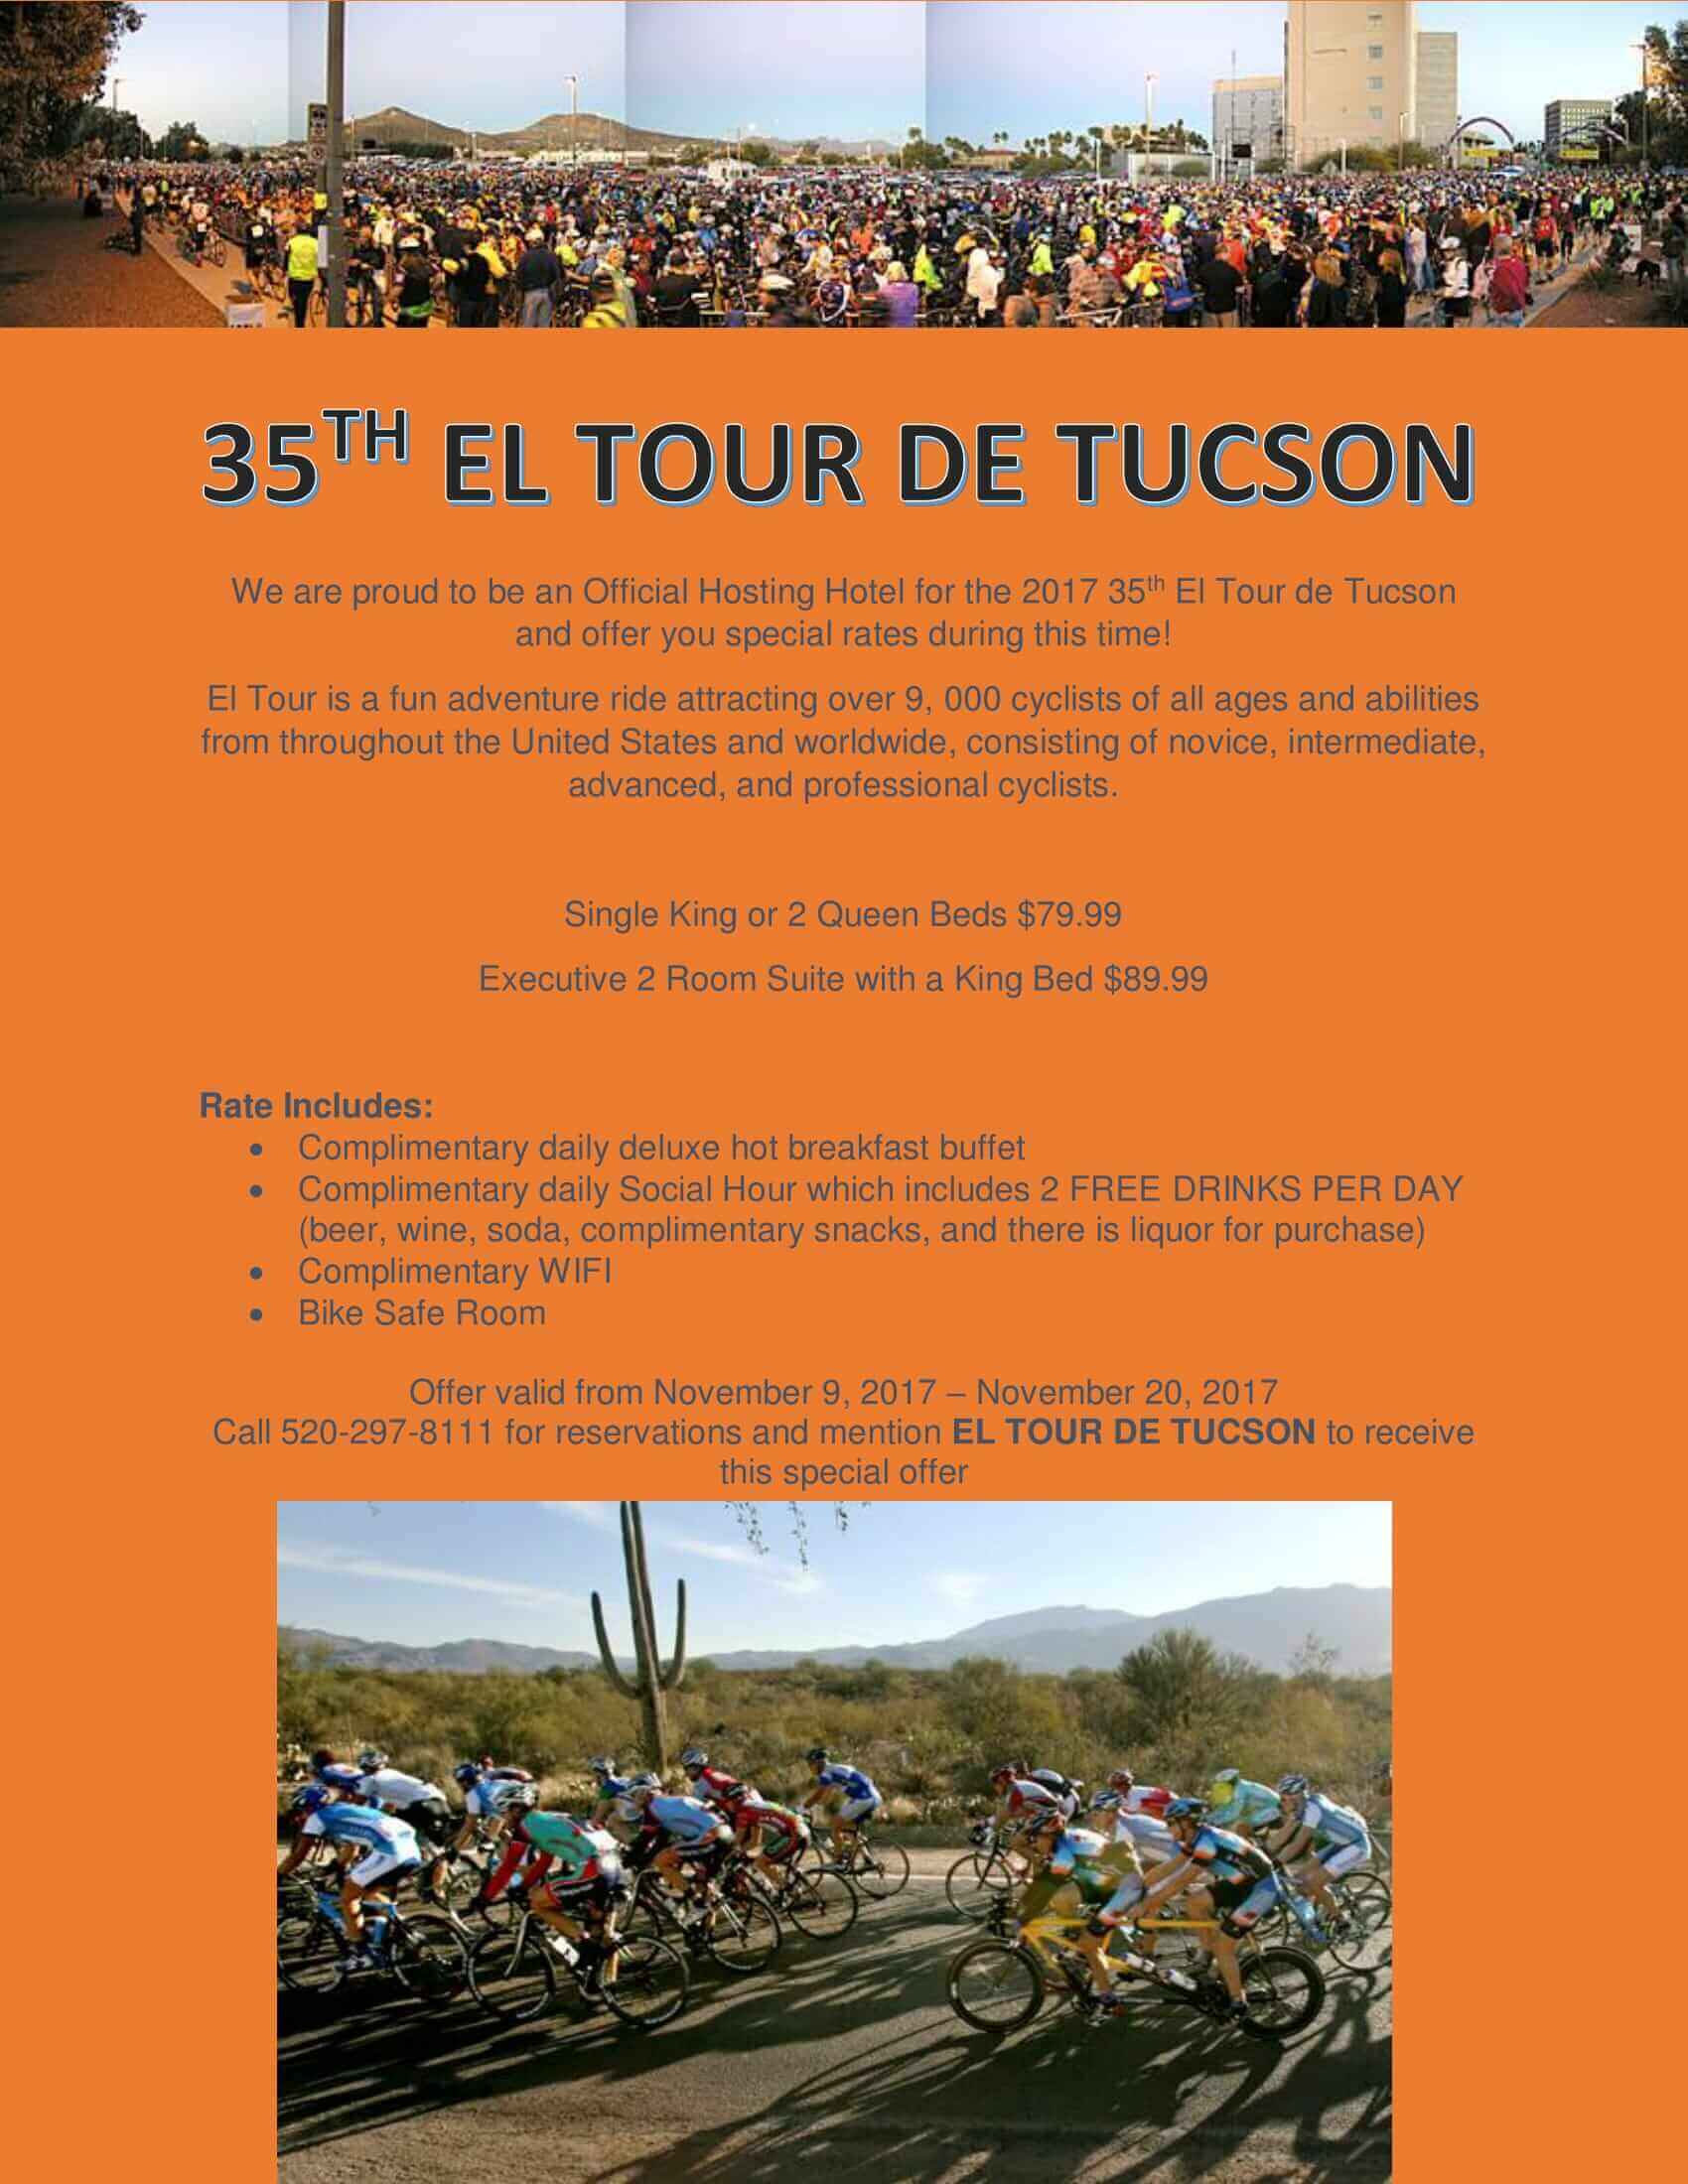 35TH TOUR DE TUCSON